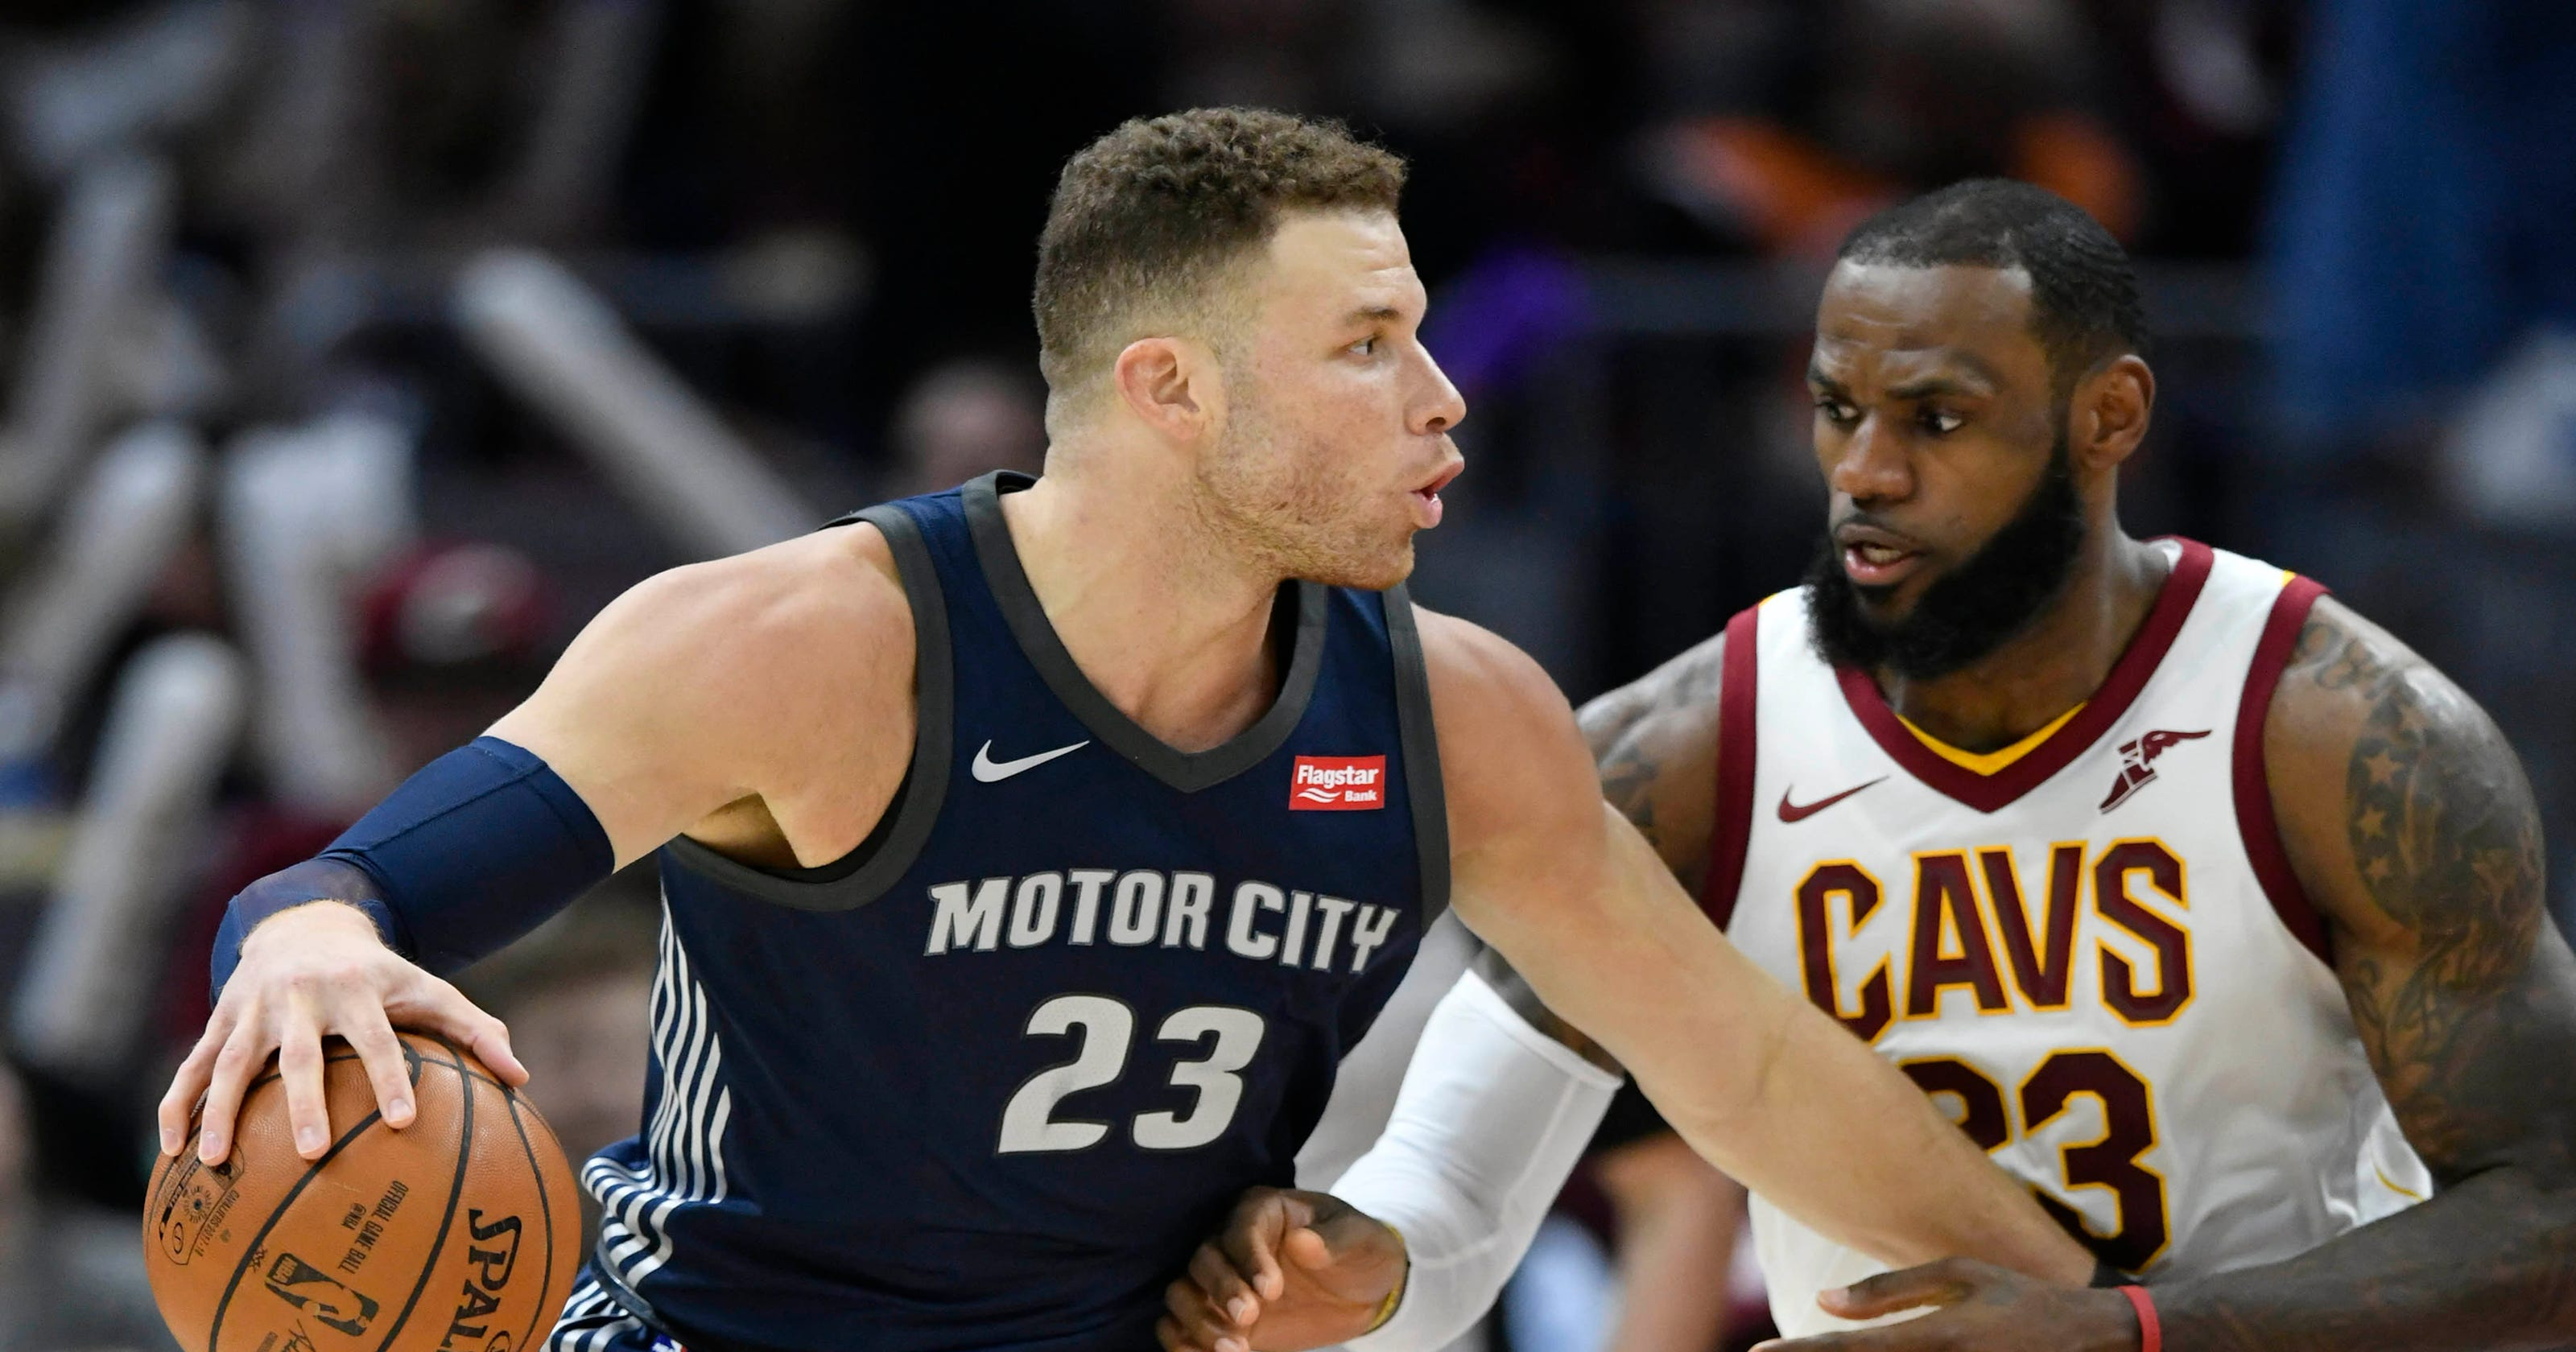 c5b3cfc3e95 How good can Detroit Pistons be in the East post-LeBron James?